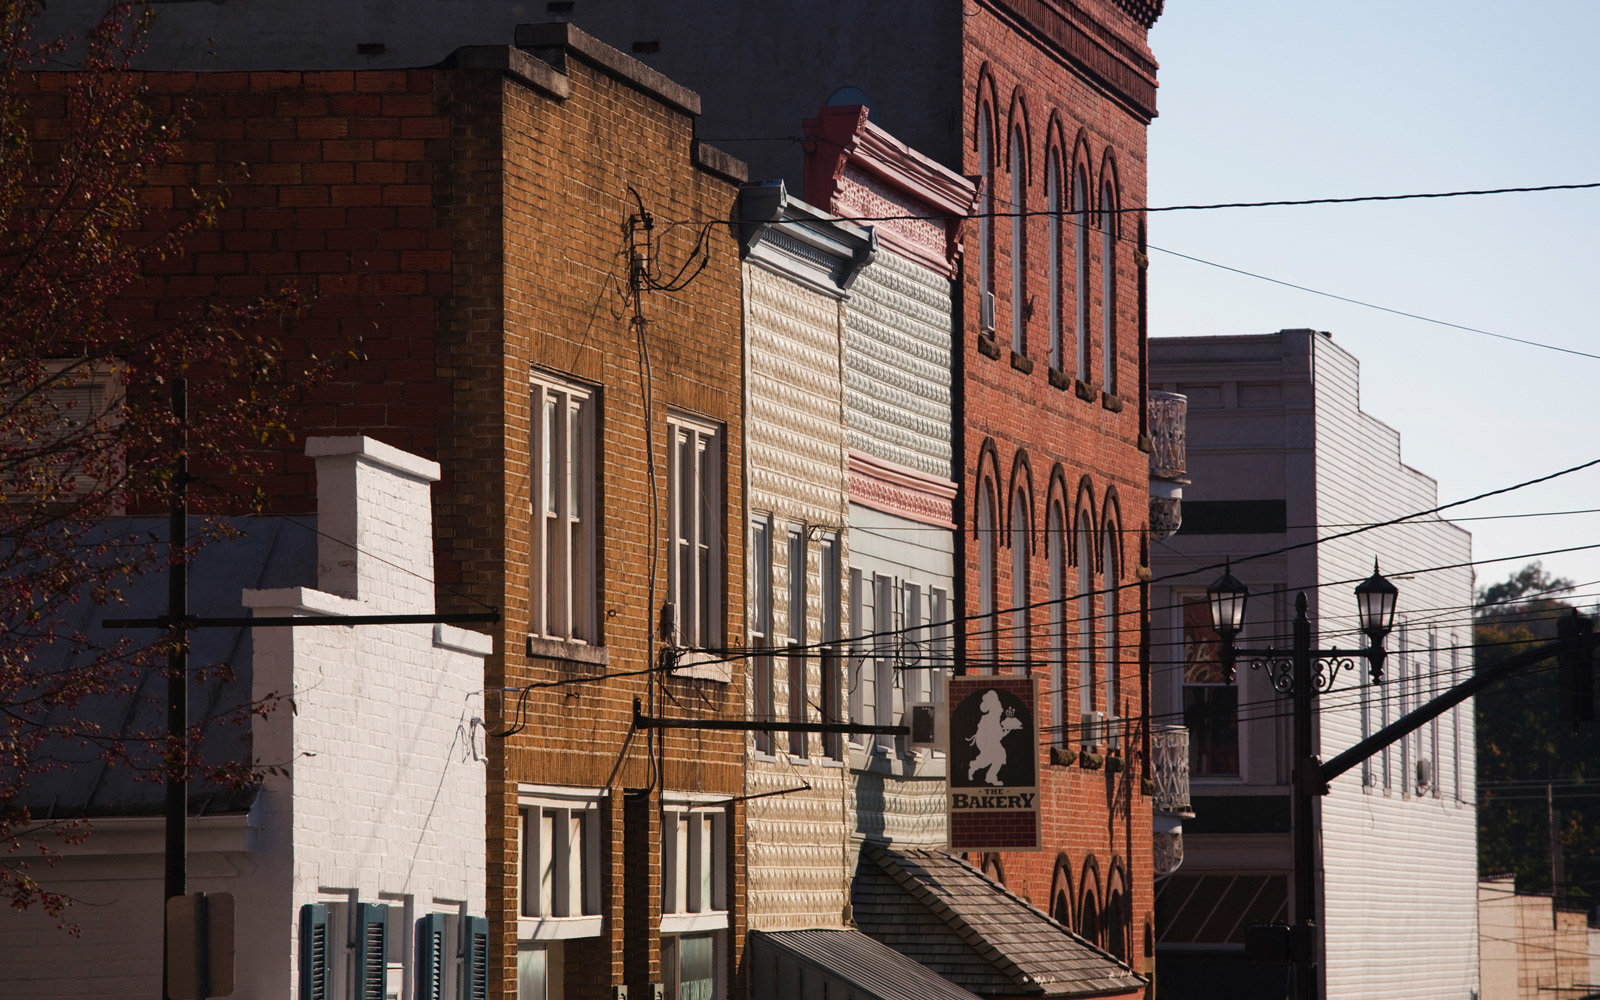 Buildings in a town, Lewisburg, Greenbrier County, West Virginia, USA